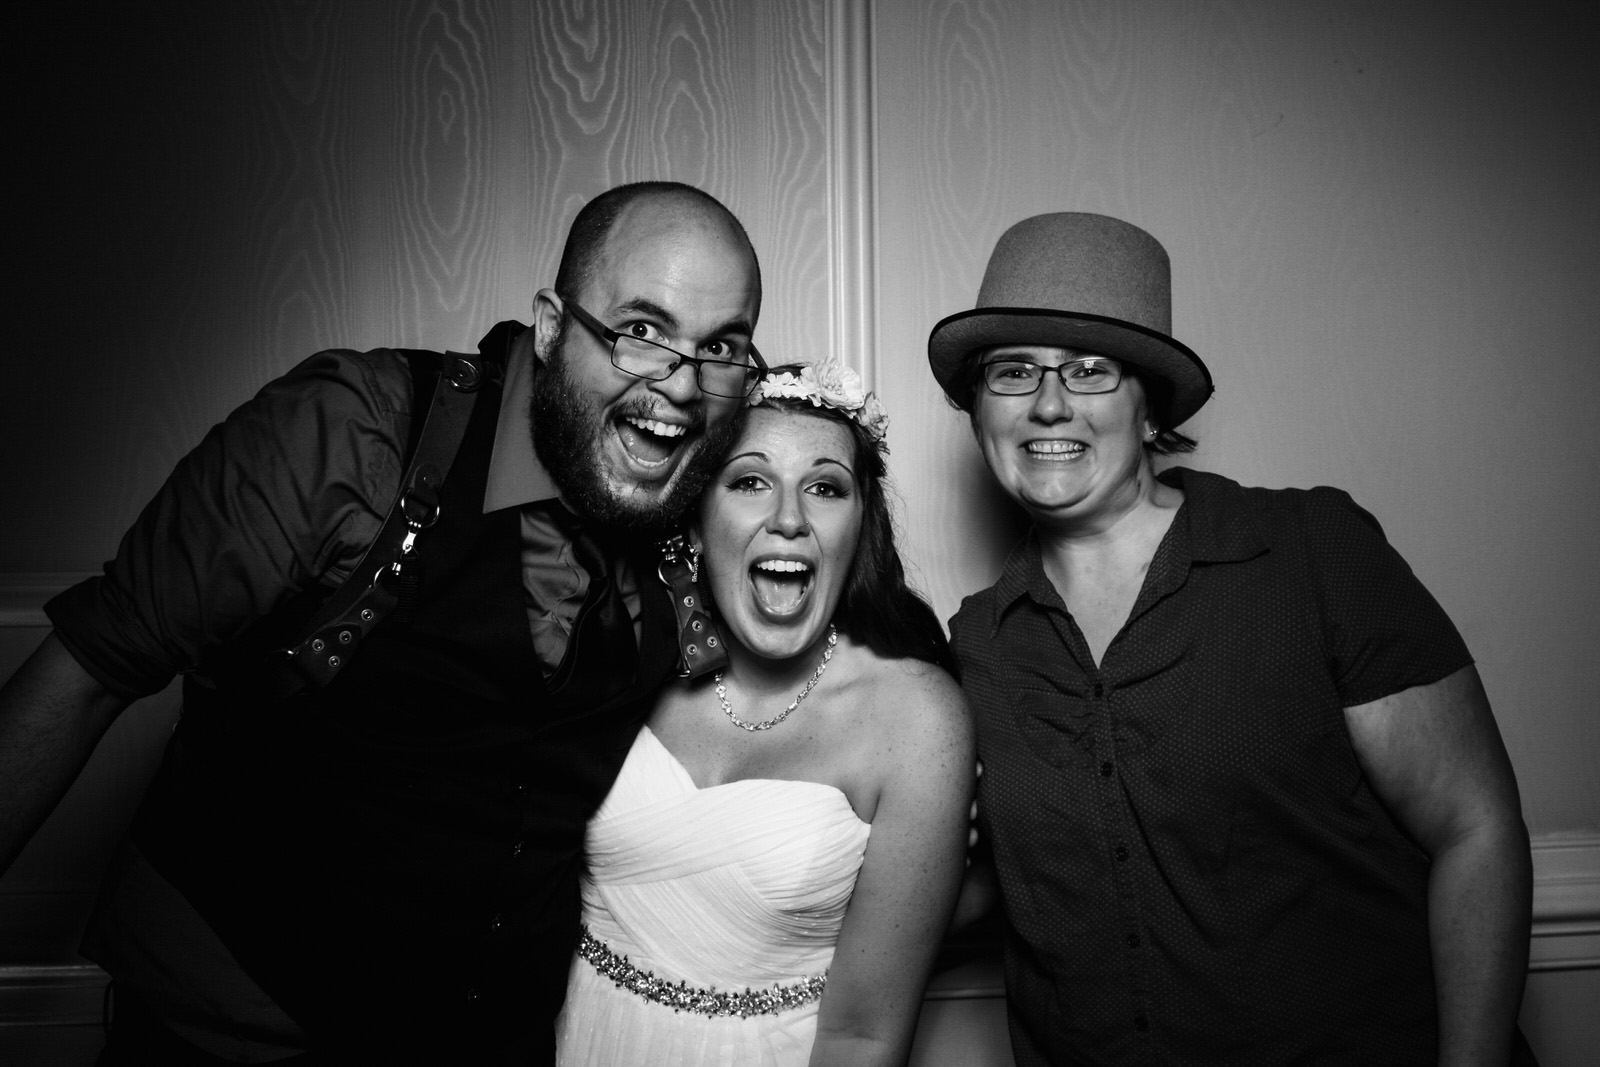 Ashley-Tyrone-Wedding-Photo-Booth-Presidential_Norristown-Wedding-29.jpg